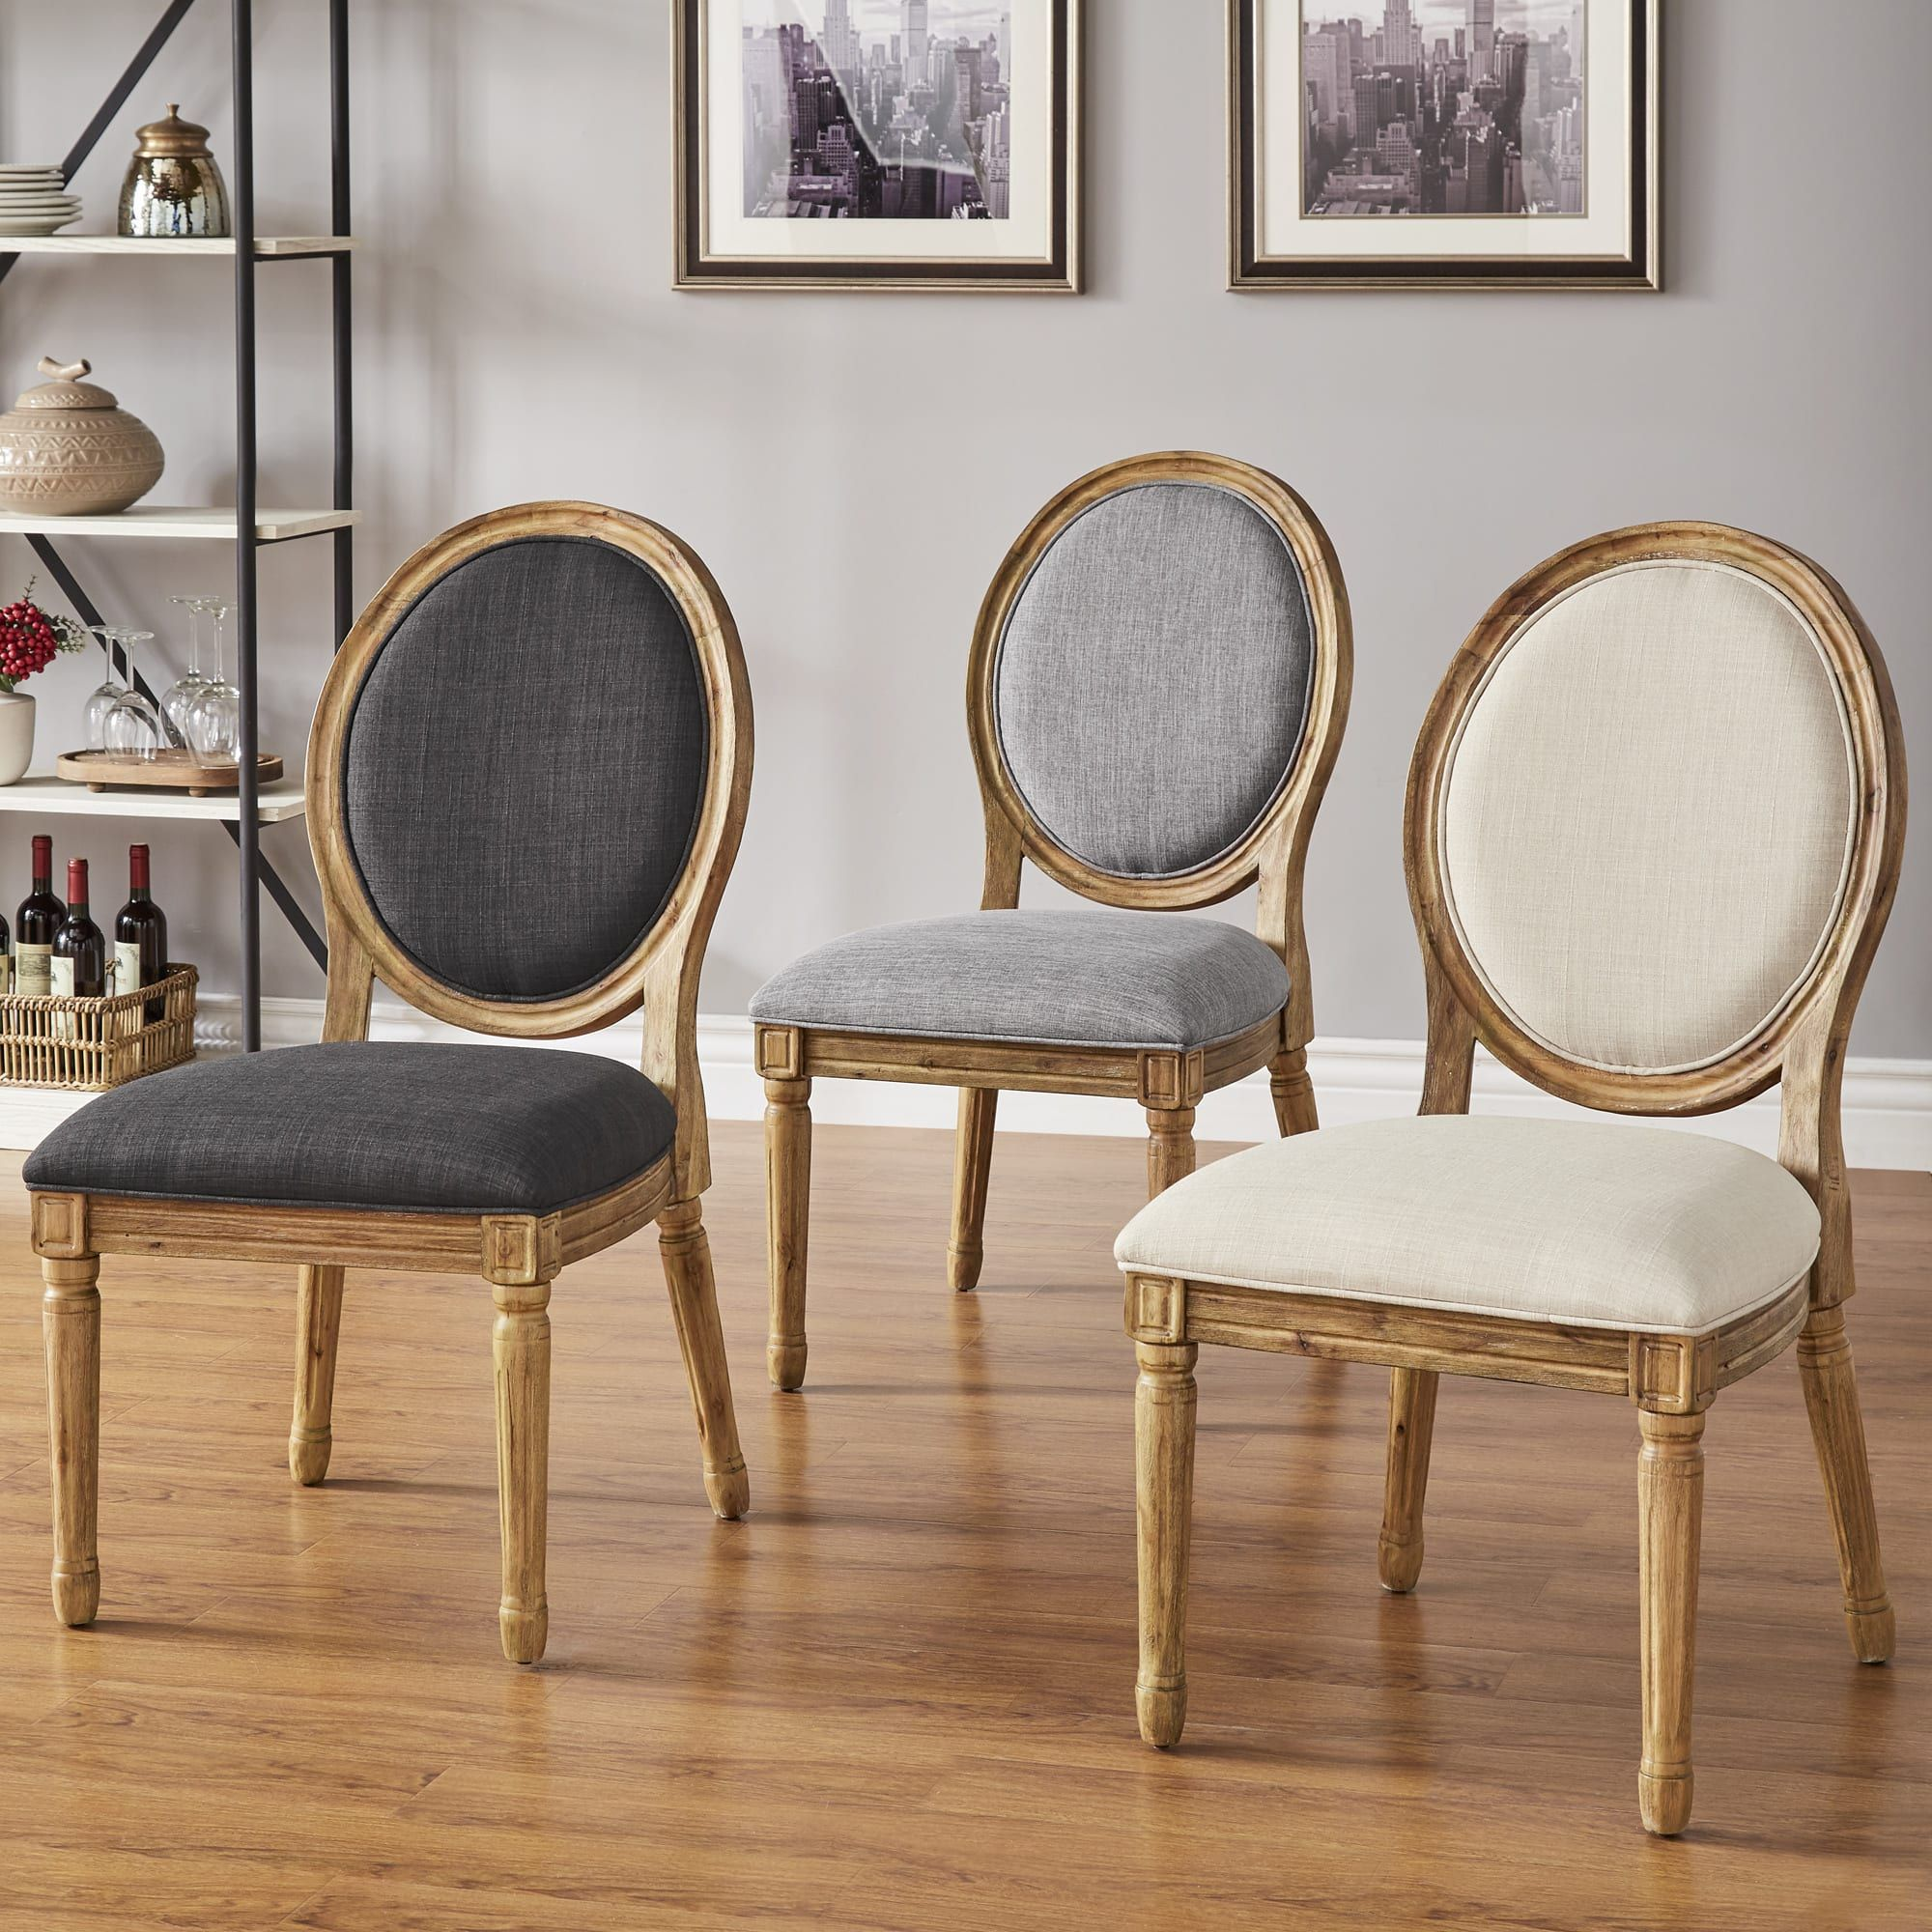 Best Place To Buy Dining Room Set: Deana Round Back Linen And Pine Wood Dining Chairs (Set Of